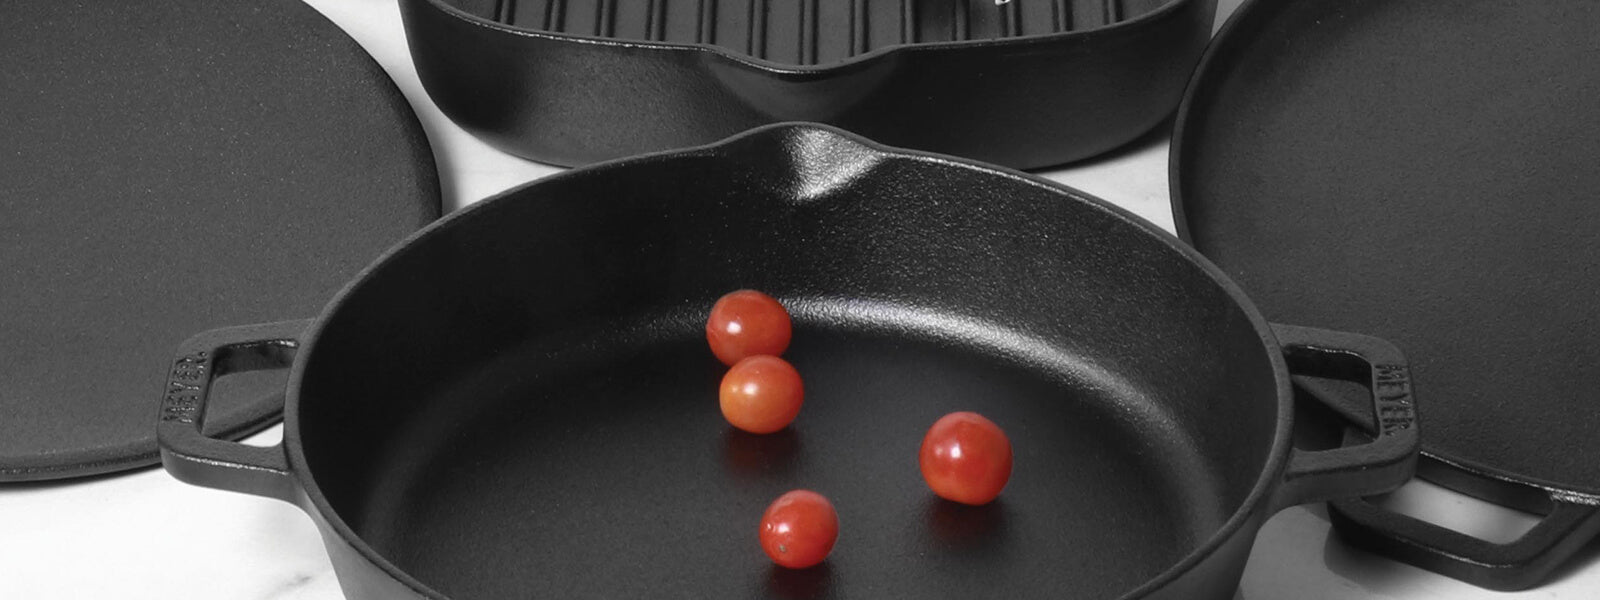 Cast Iron Cookware as Compared to Other Cookware